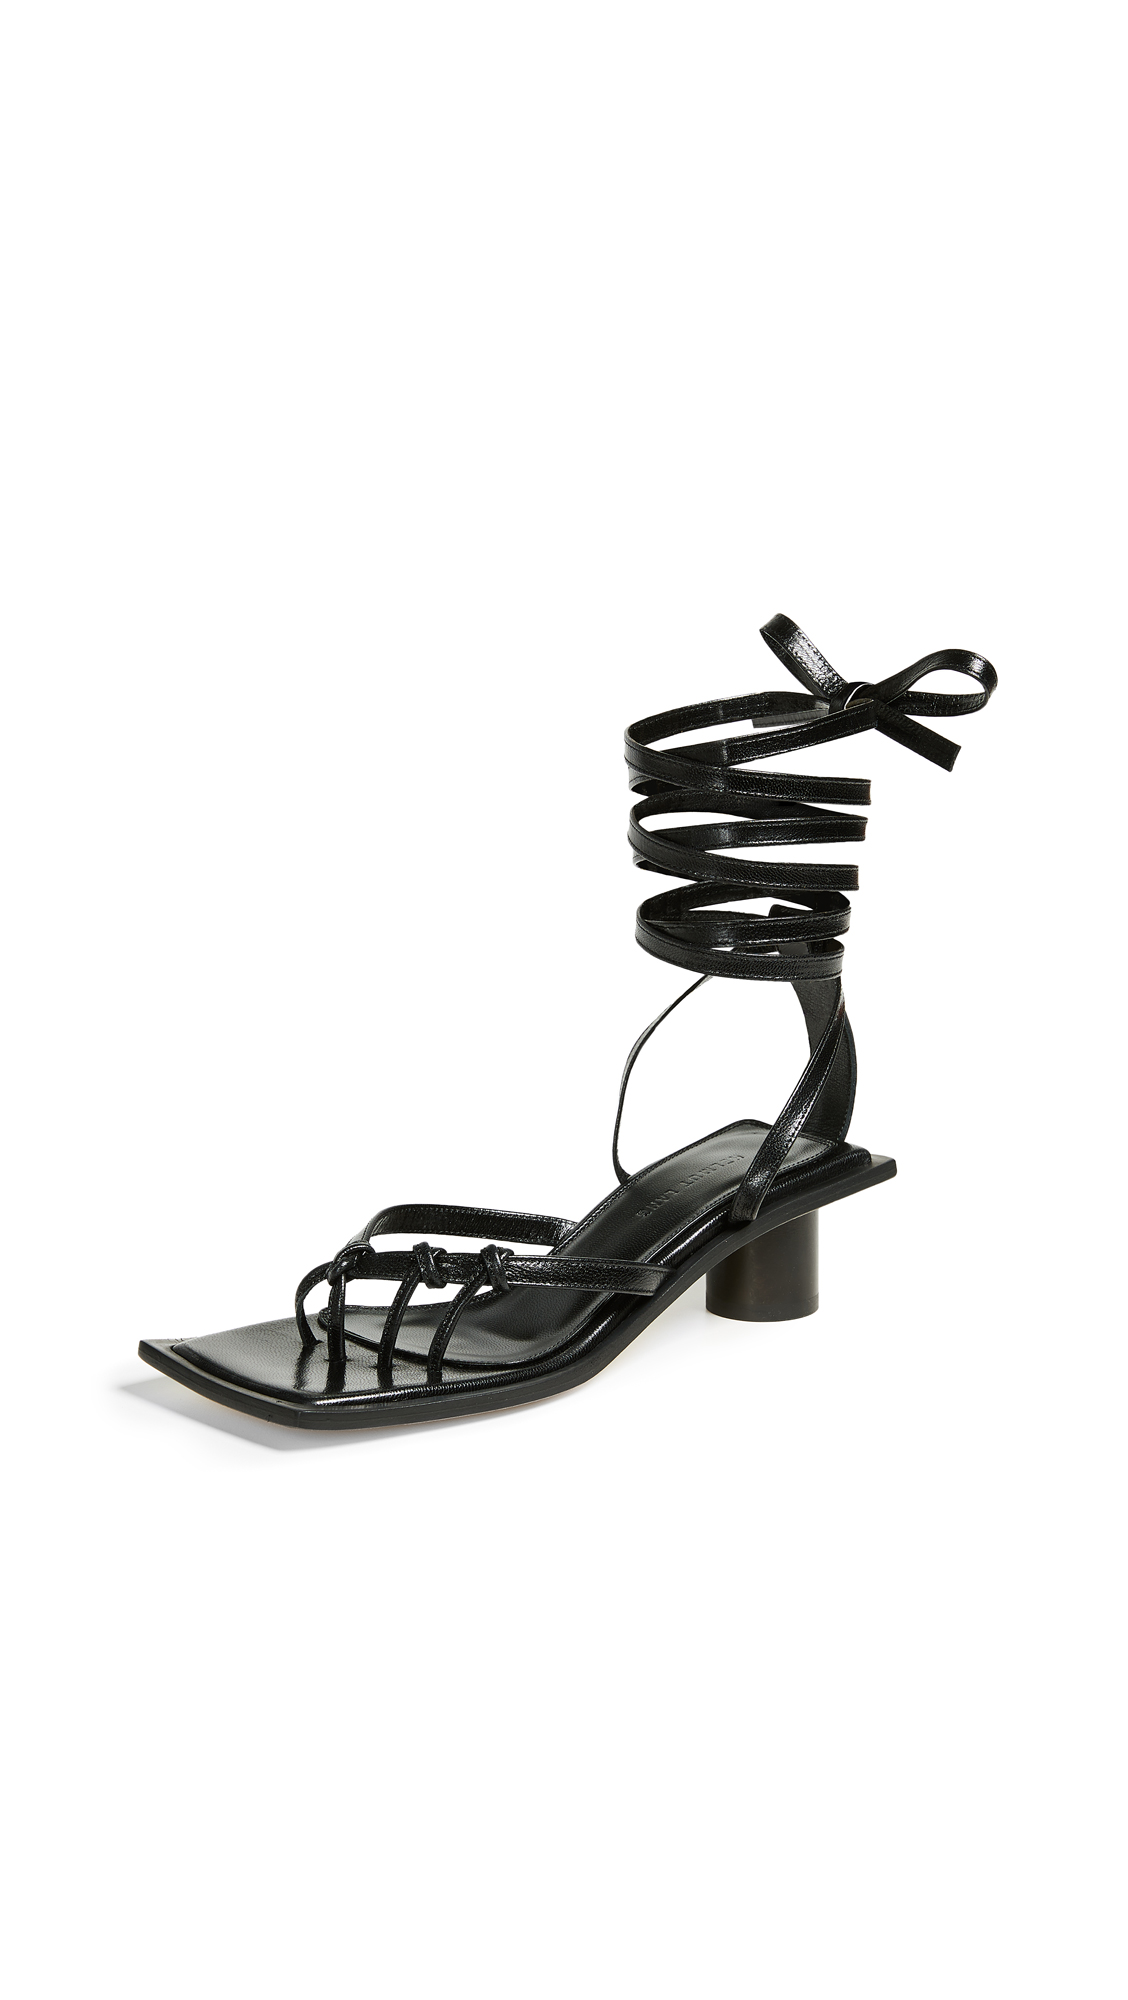 Helmut Lang Knotted Mid Heel Sandals